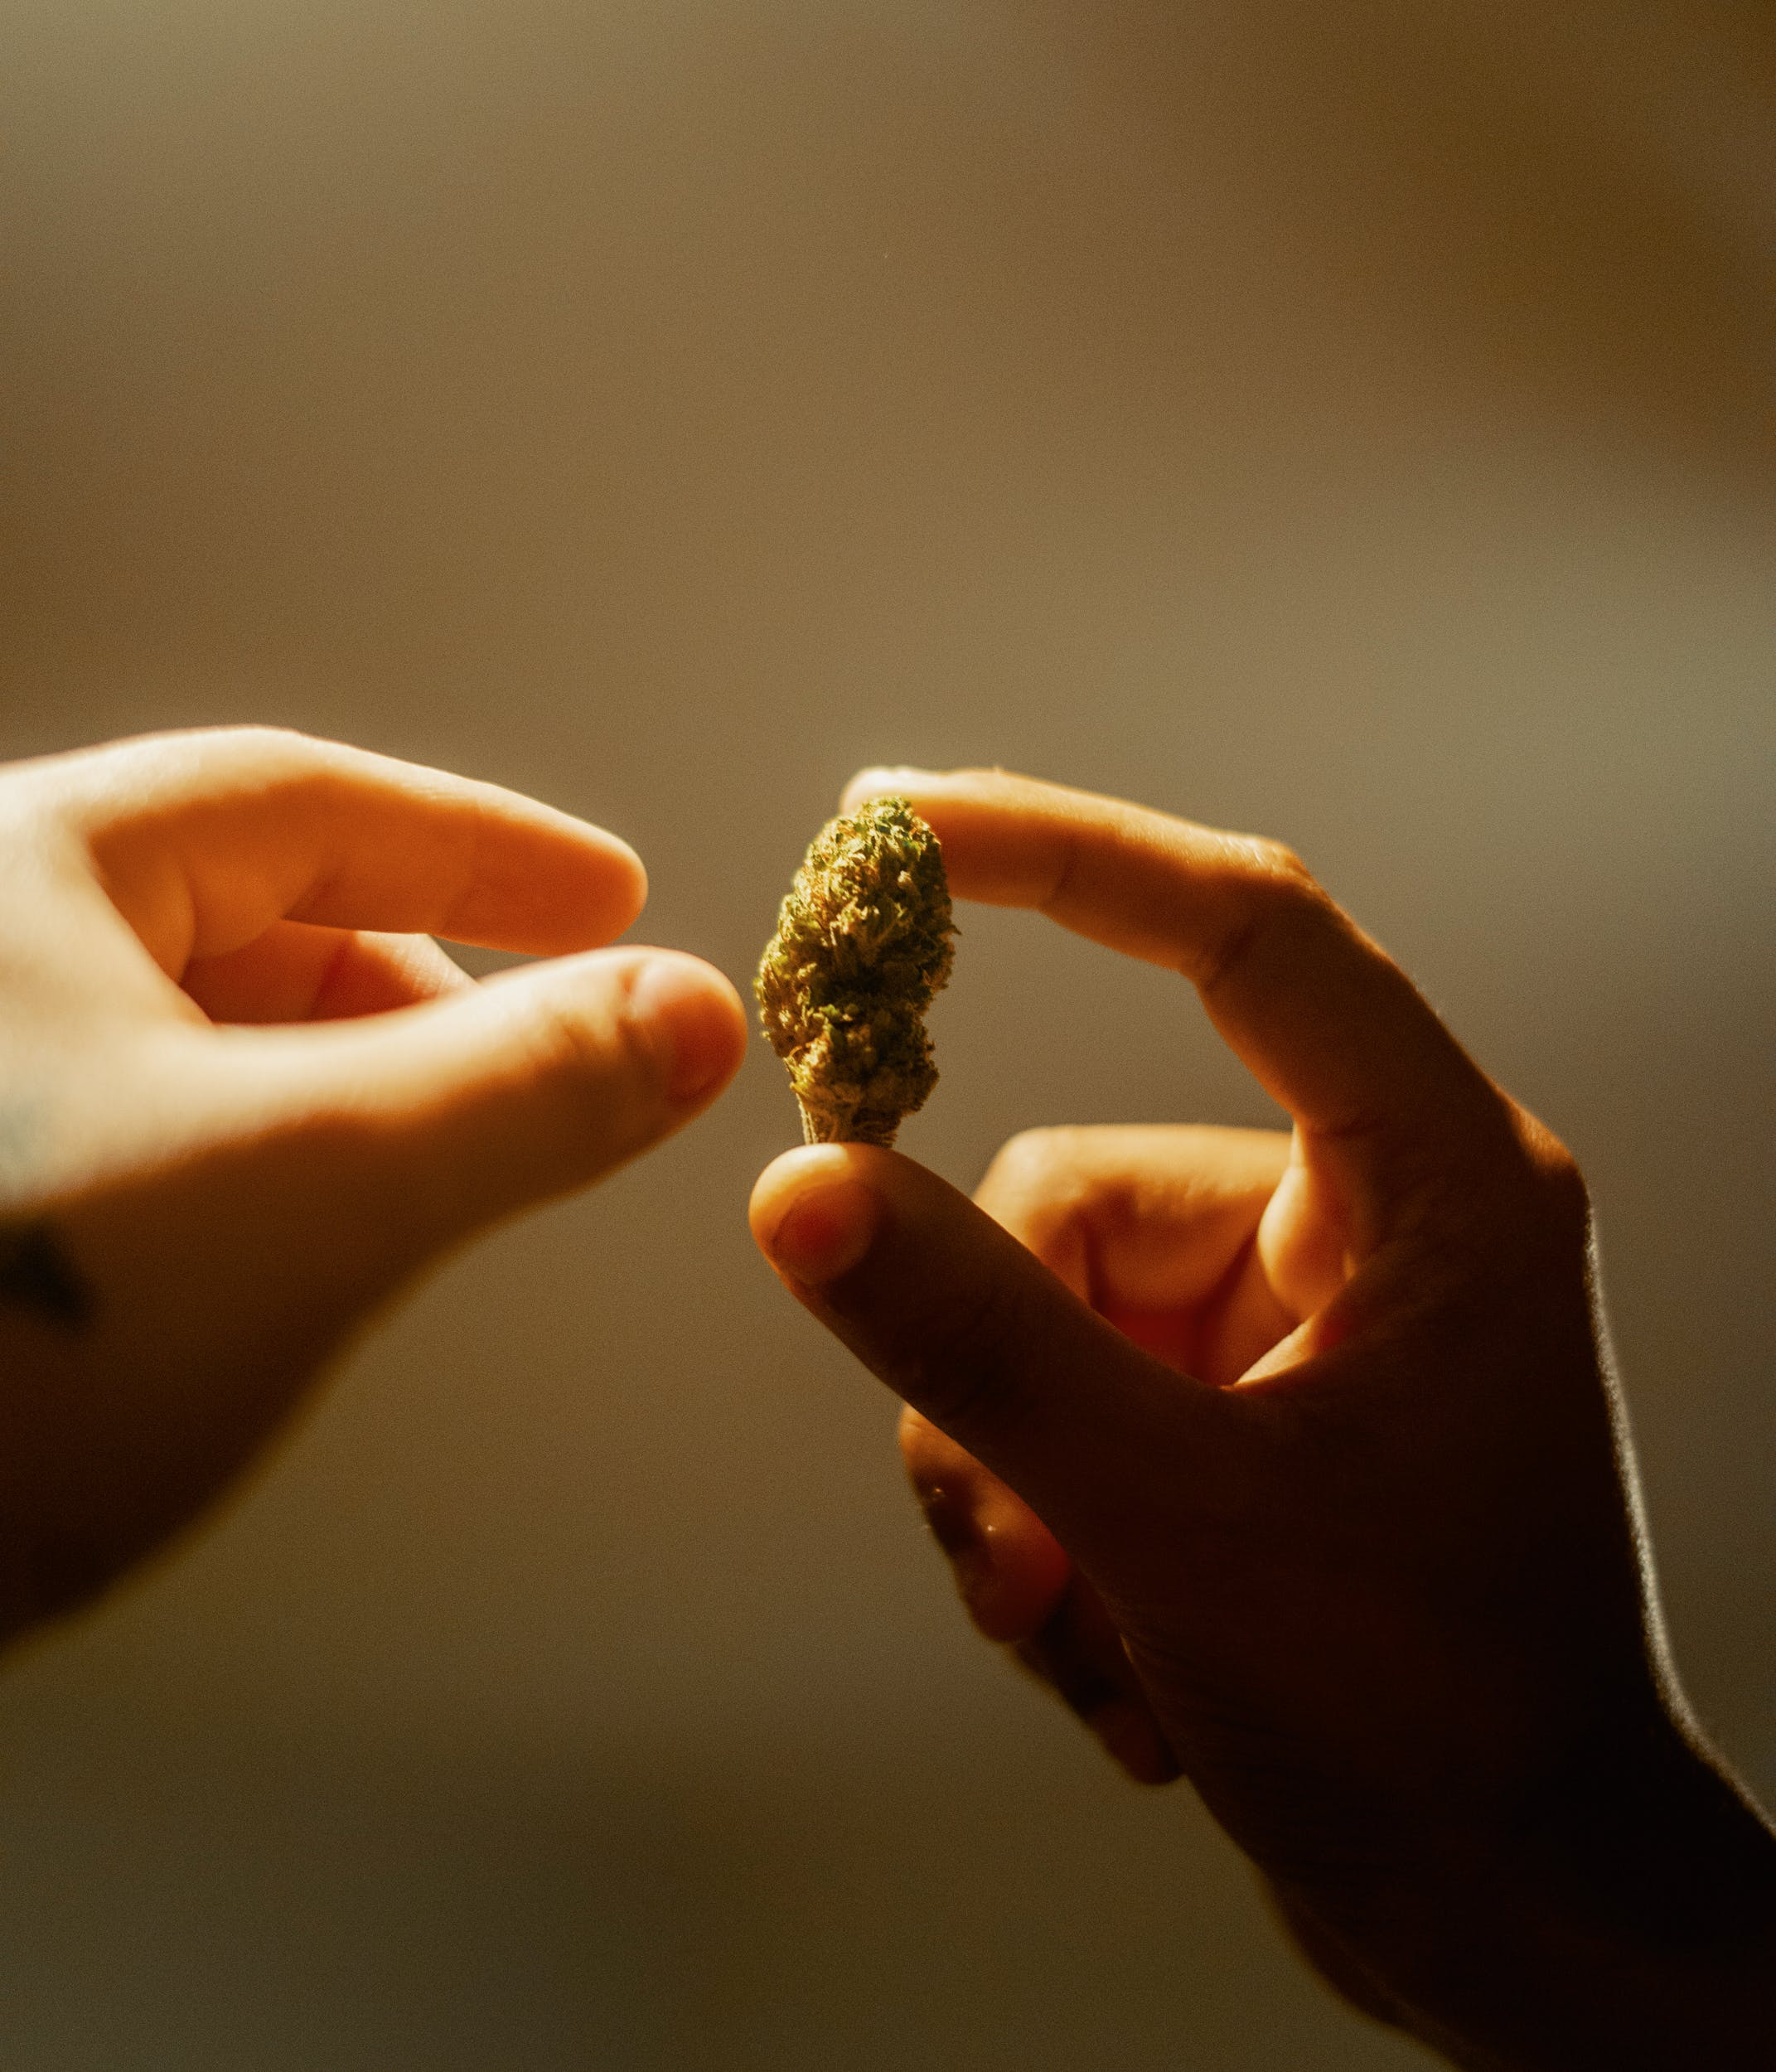 Best CBD Strains 46 Here Are The Best CBD Strains For a Chilled Out Session